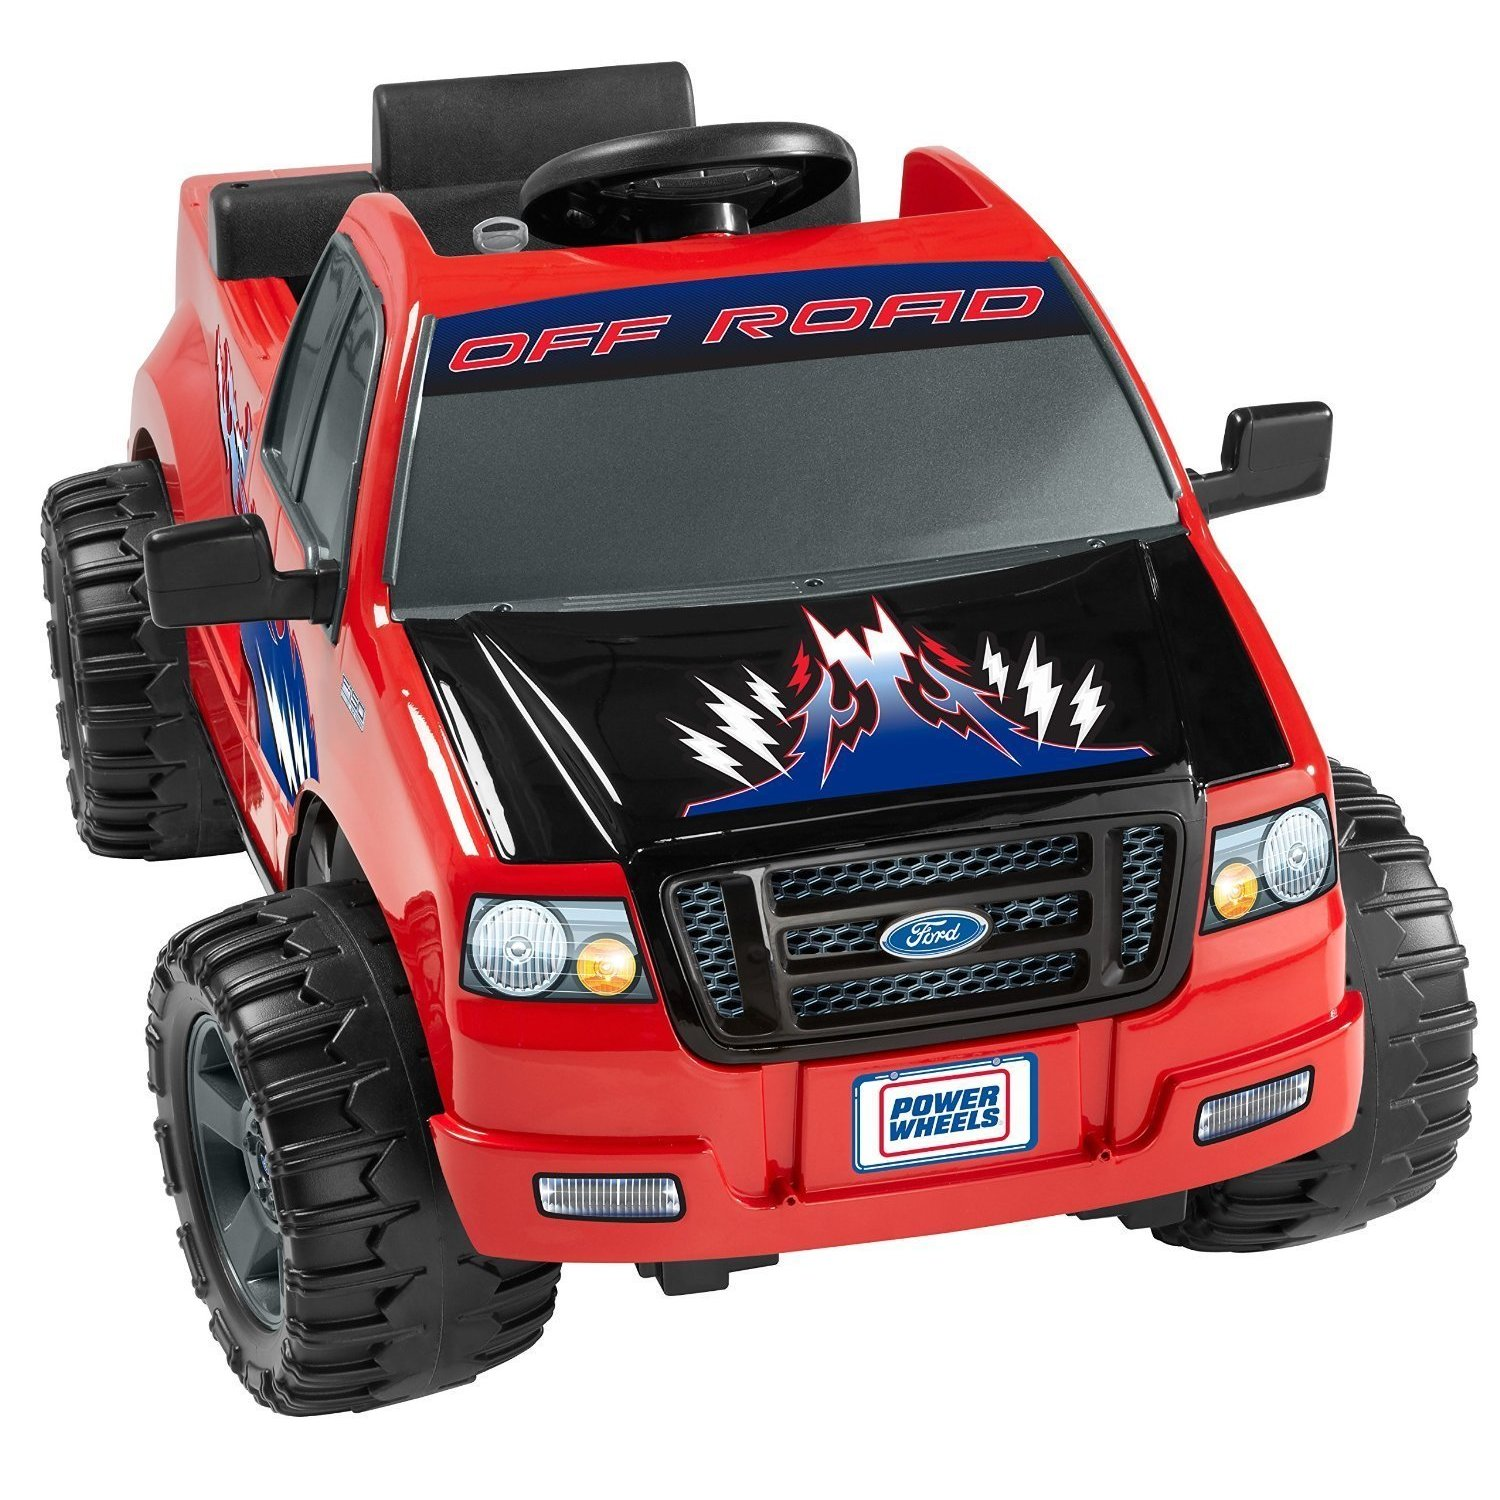 Fisher-Price Power Wheels Ford Lil' F-150, Green grass